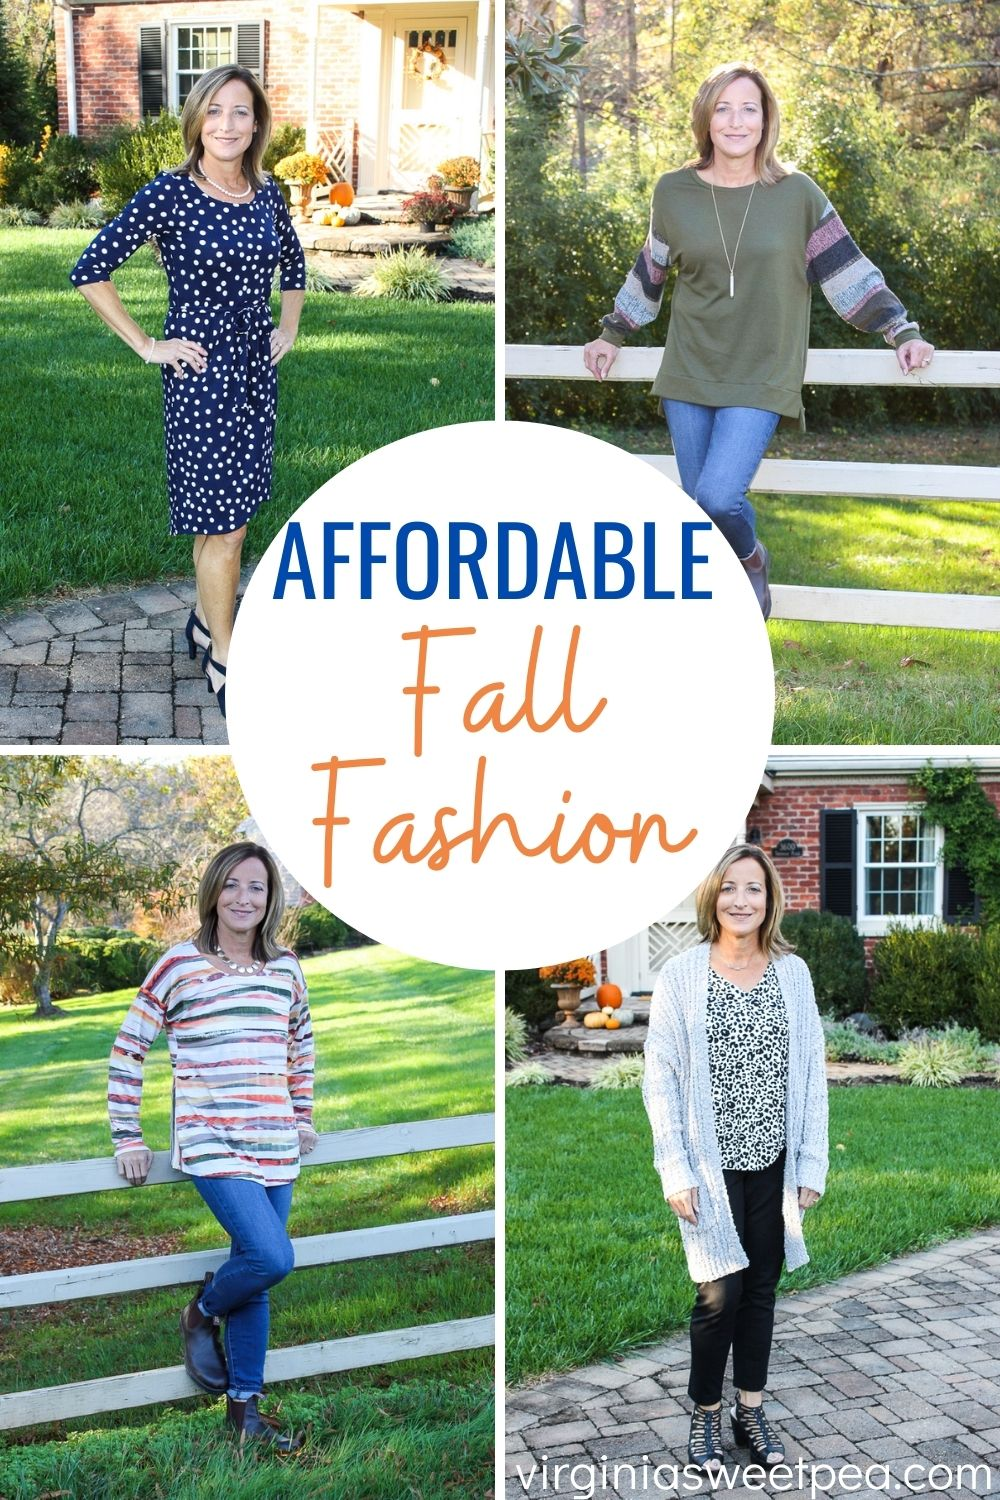 Affordable Fall Fashion - See five affordable fall fashions sent in my latest Fashom box.  Fashom is like Stitch Fix, but with lower prices.  #fallfashion #fashom #fashionover40 #fashionover50 via @spaula